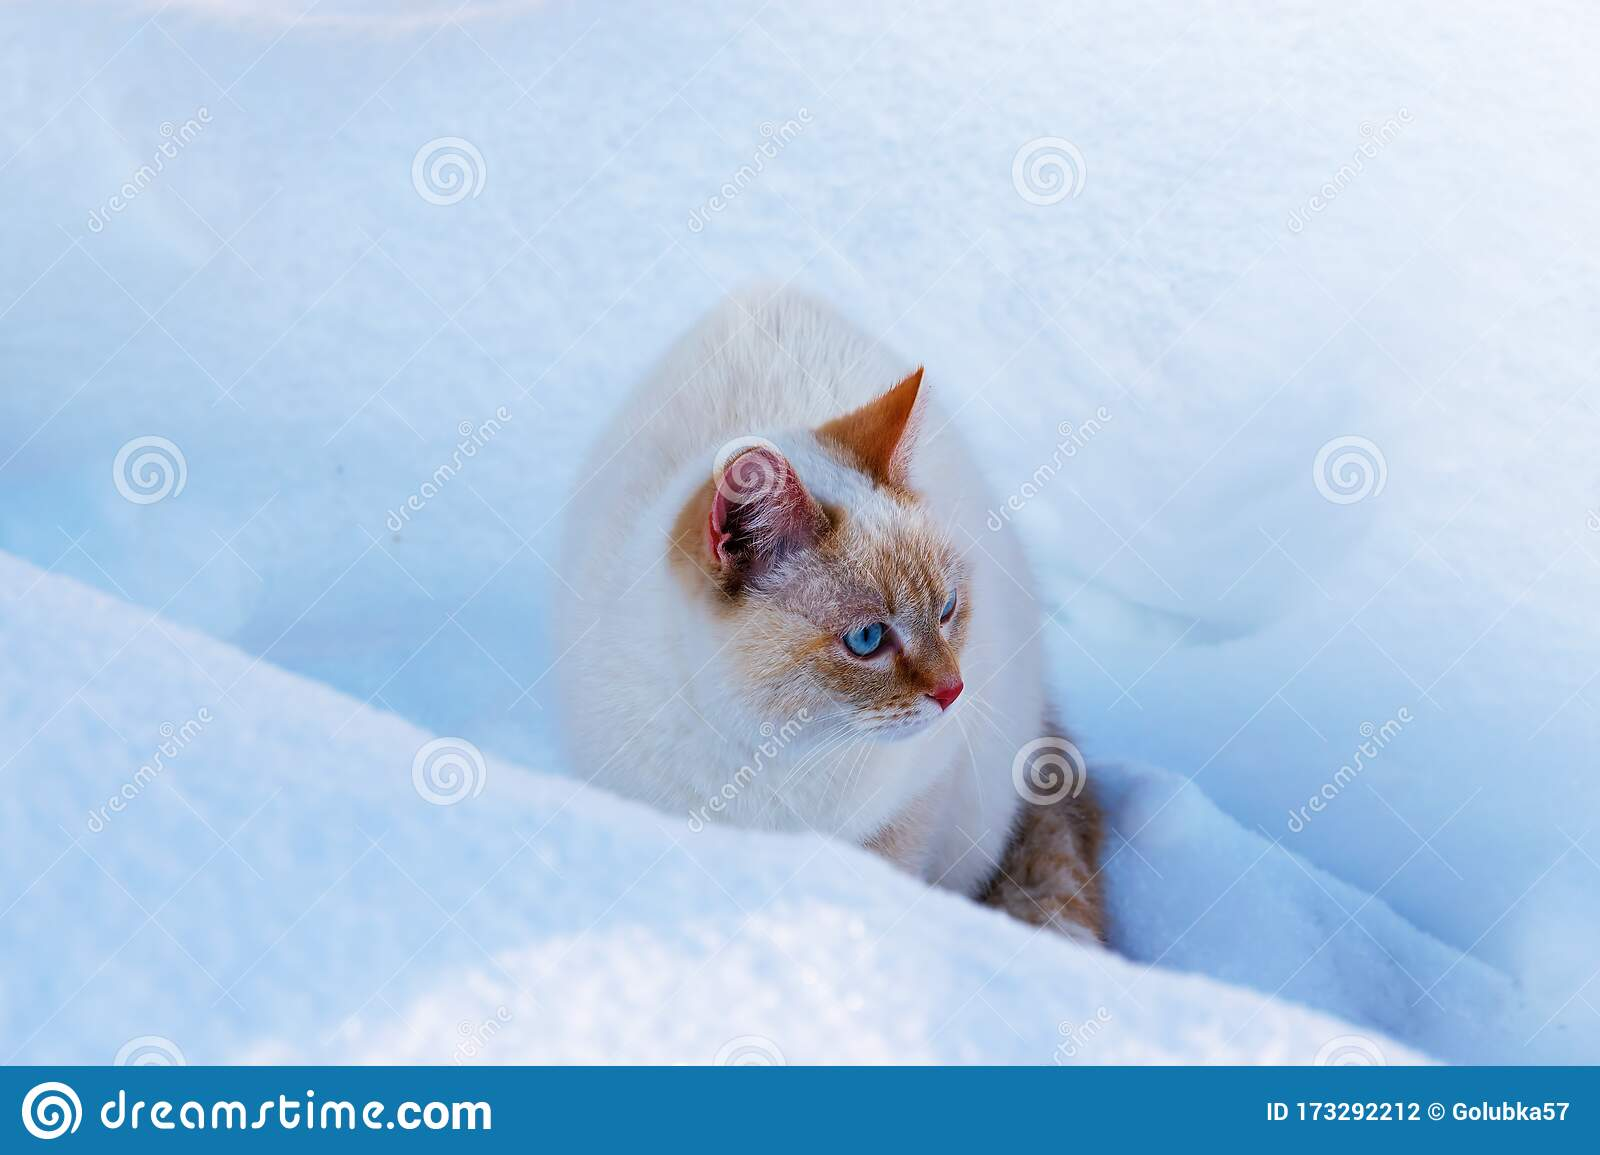 White Domestic Cat With Blue Eyes In The Snow In Winter Sitting In A Snowdrift Stock Photo Image Of Cute Blue 173292212